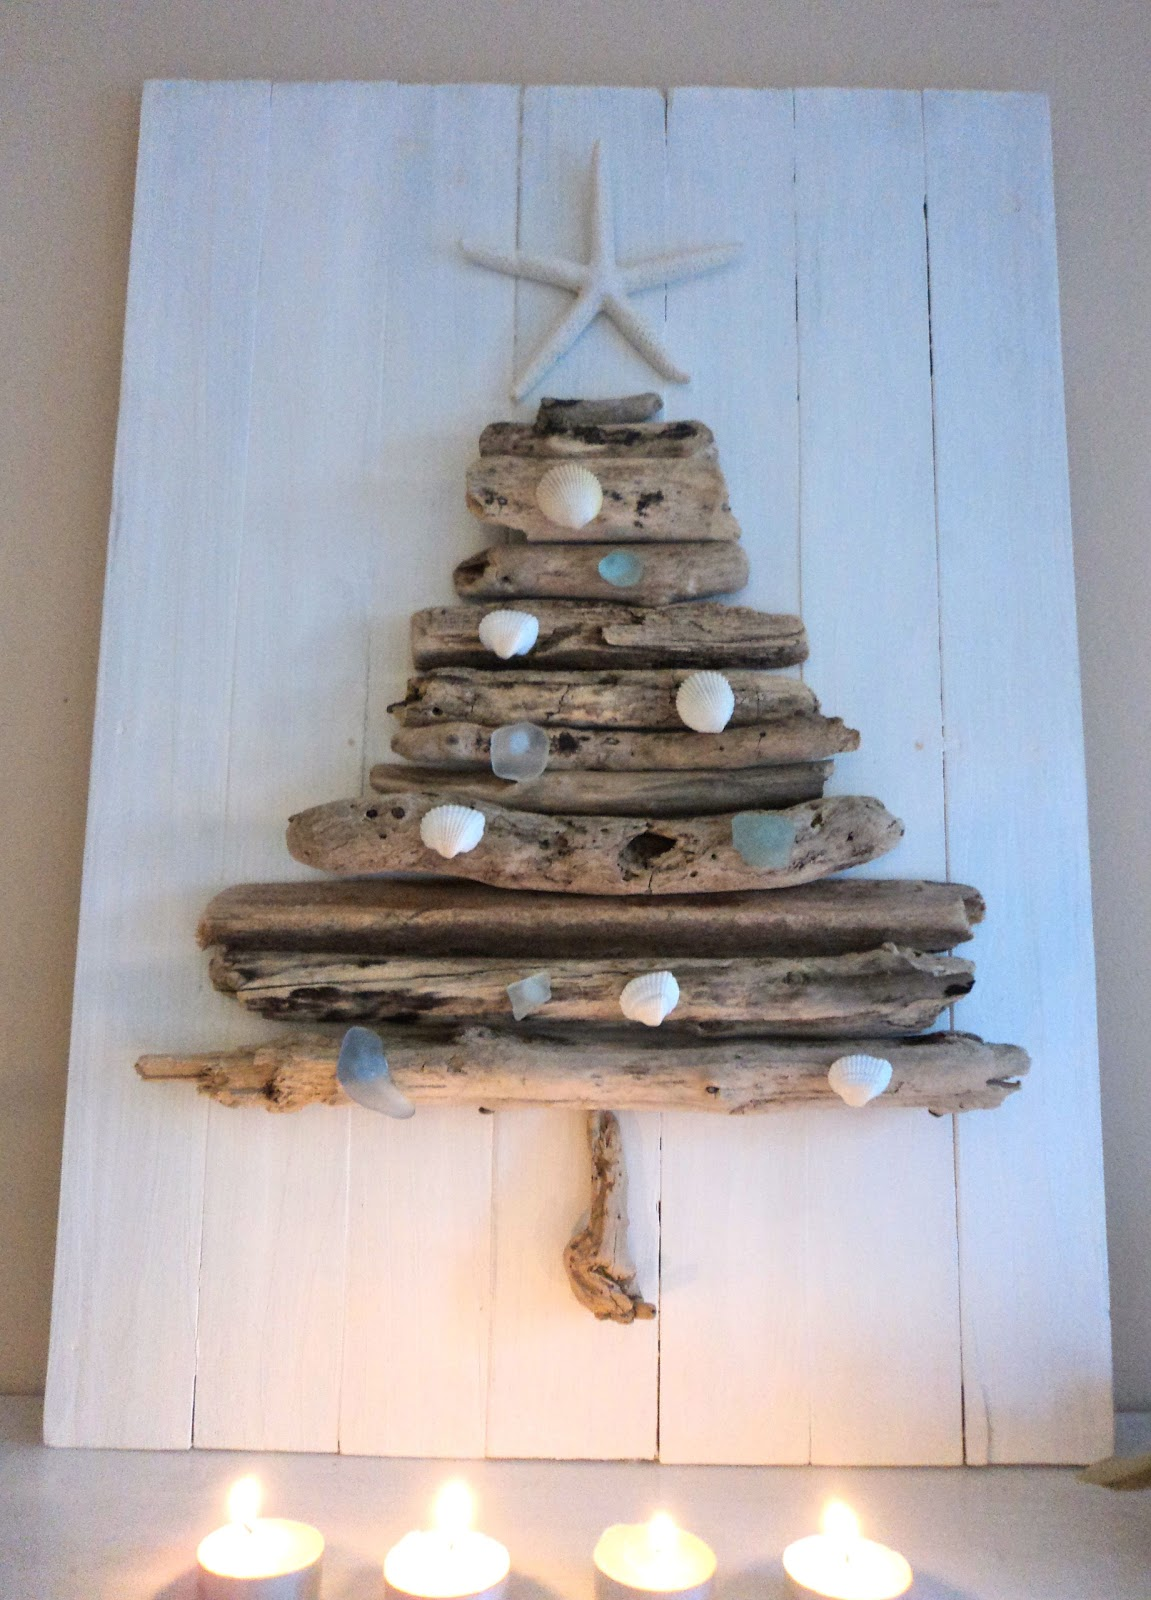 Christmas wood crafts on pinterest just b cause for Wooden christmas crafts to make